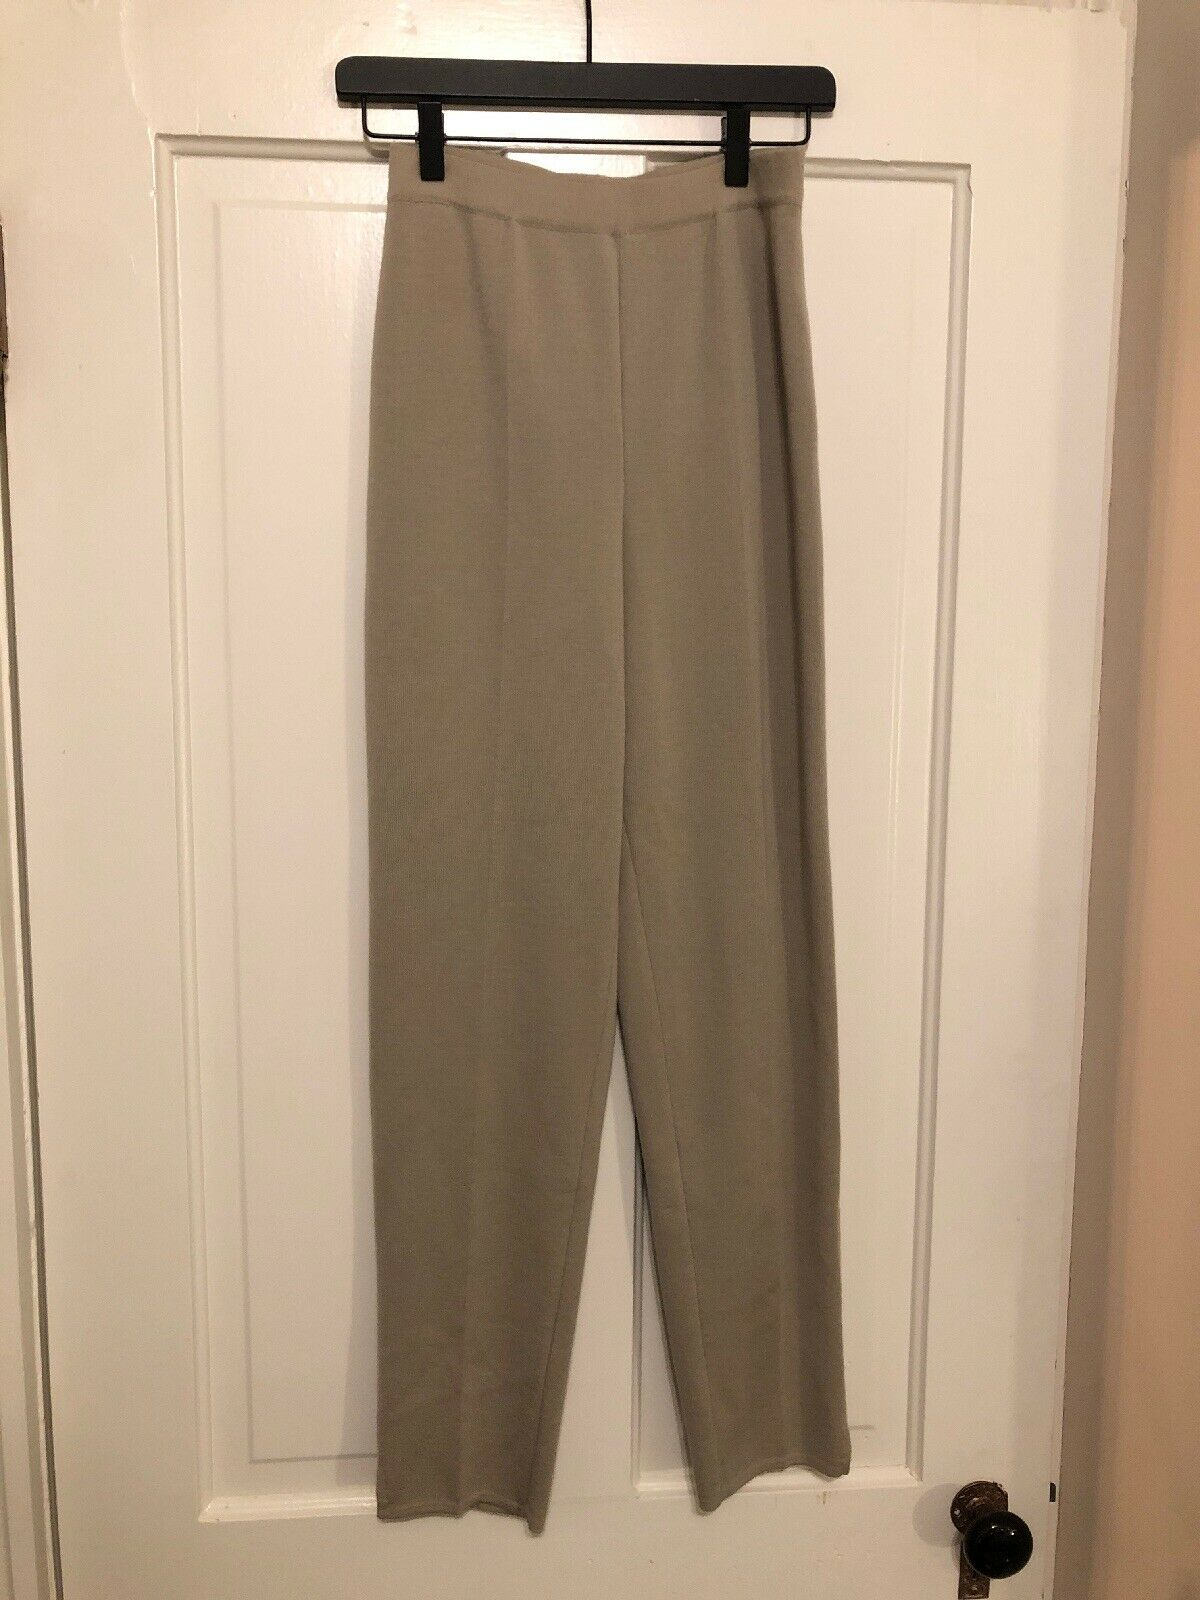 Gispa 100% Pure Wool Beige Pull On Pant Größe 6 Made In